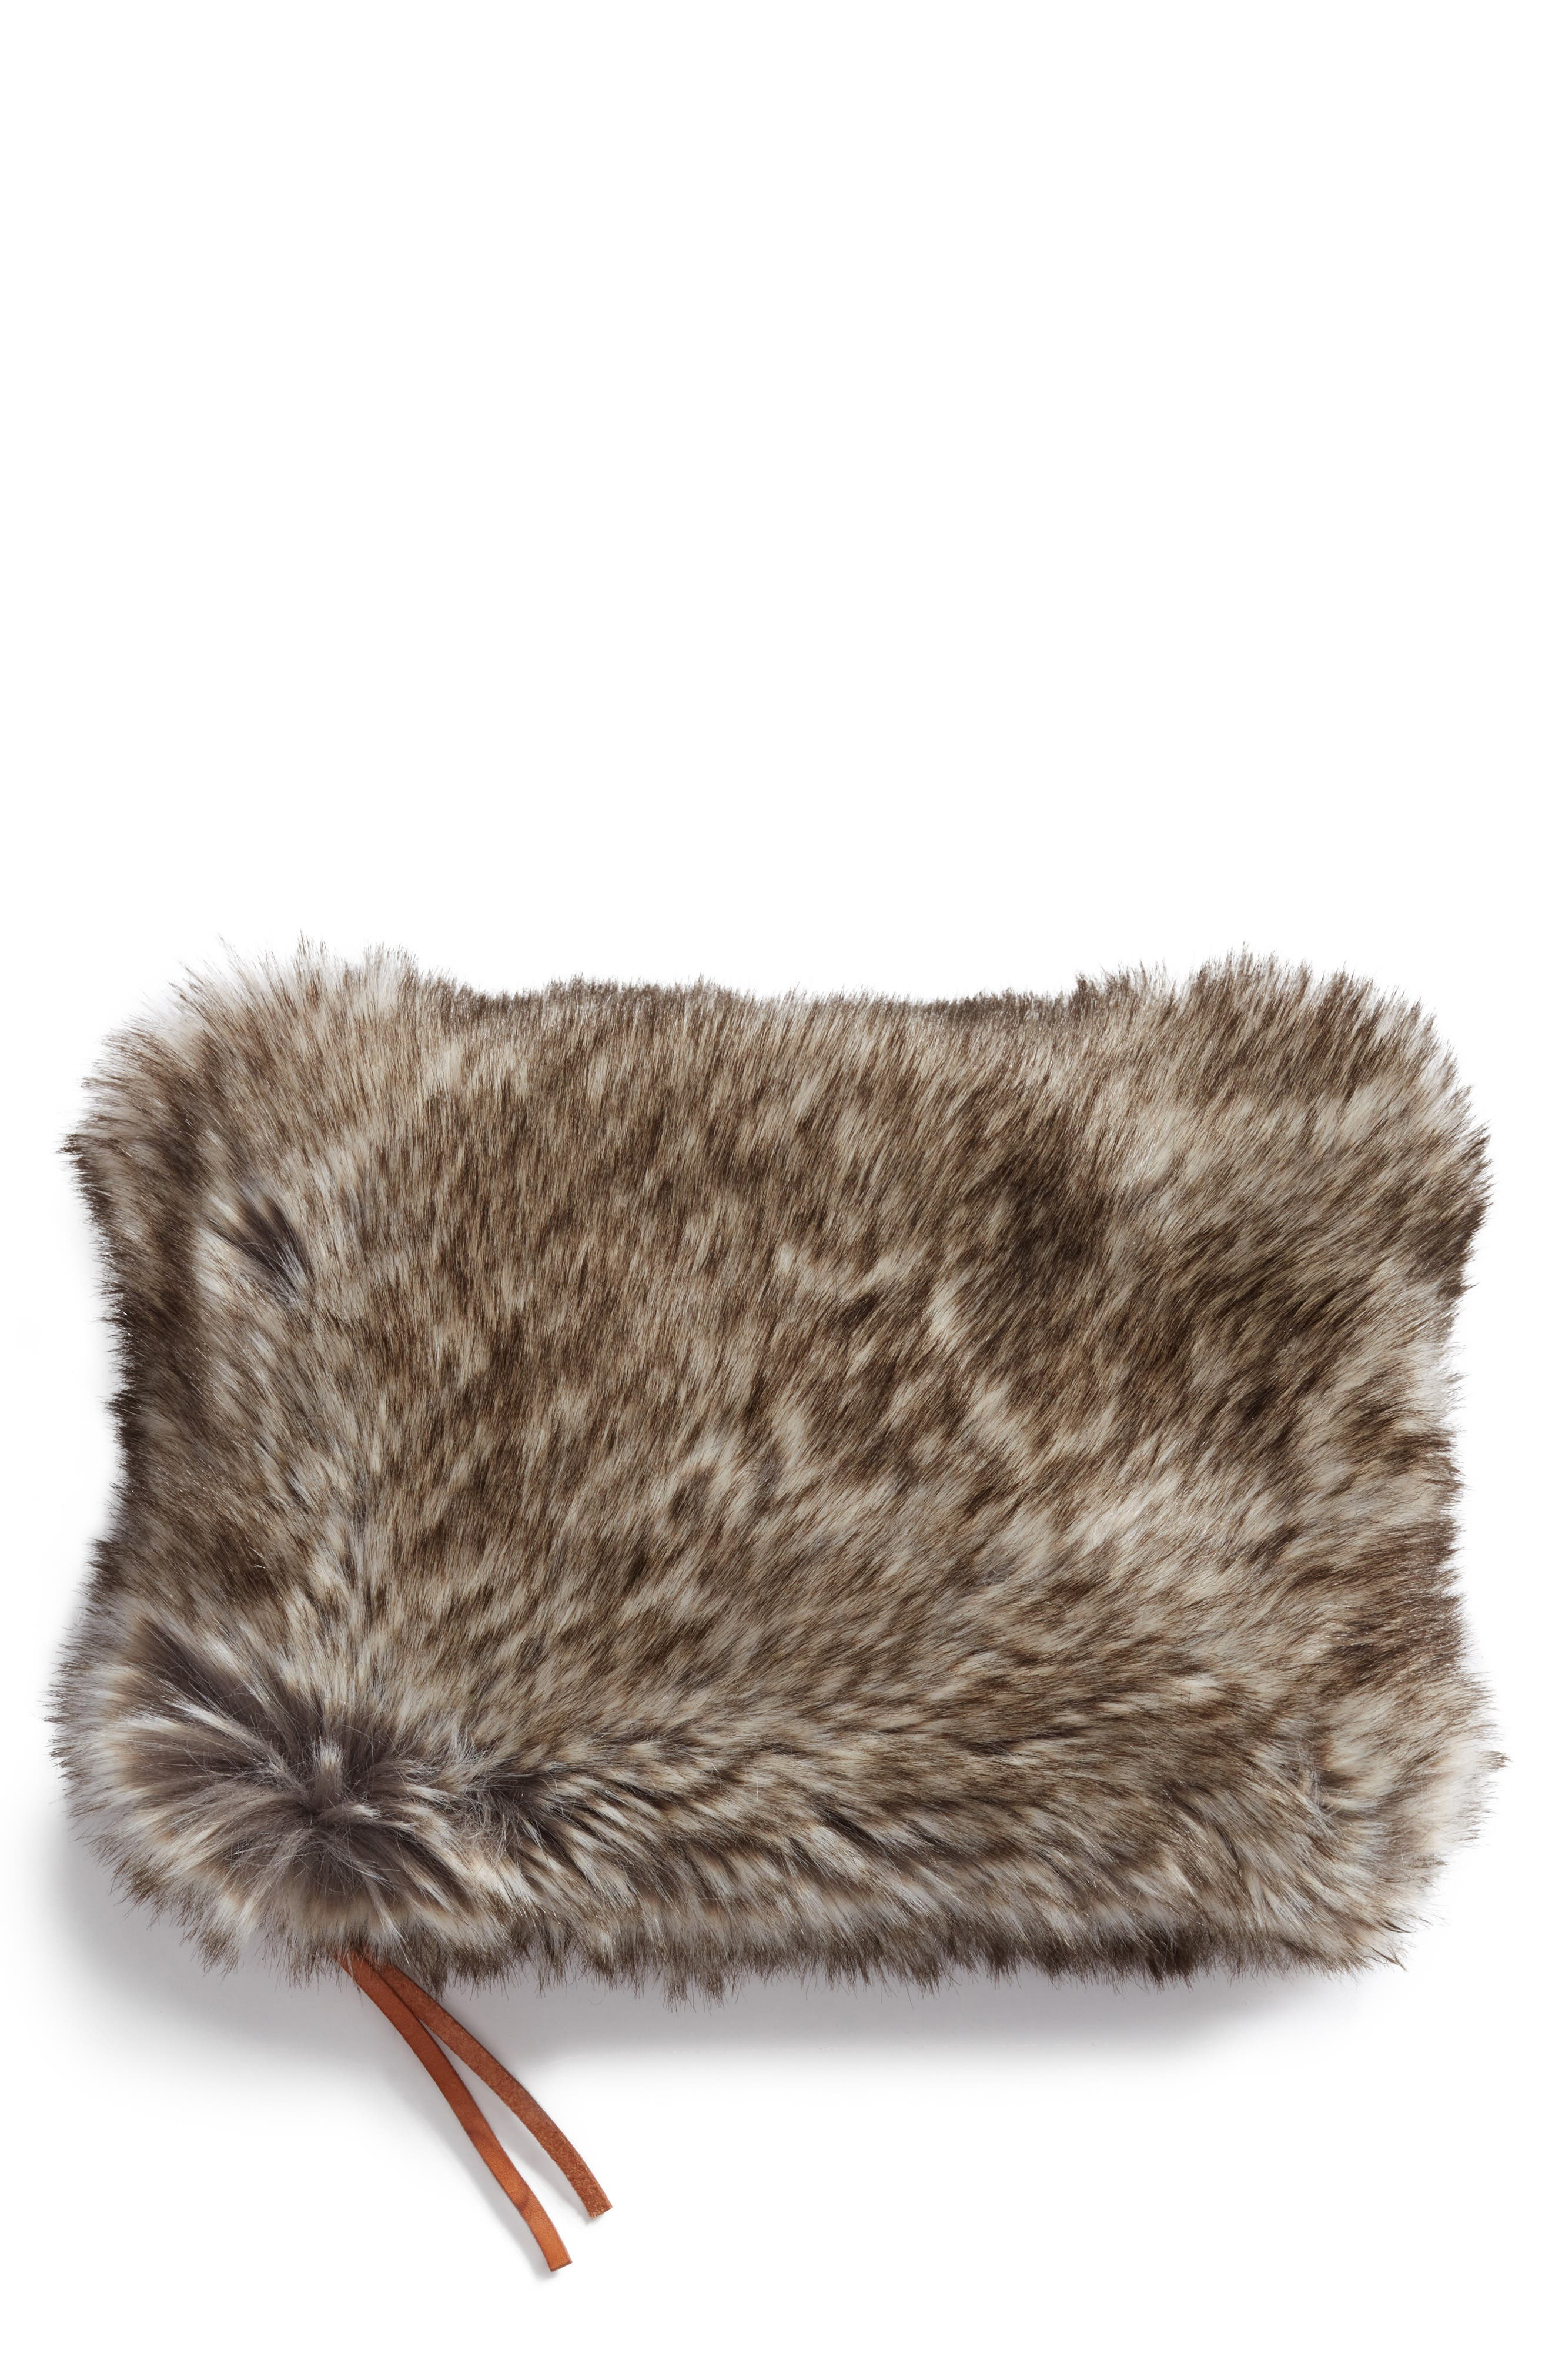 Cuddle Up Faux Fur Pouch,                             Main thumbnail 1, color,                             200